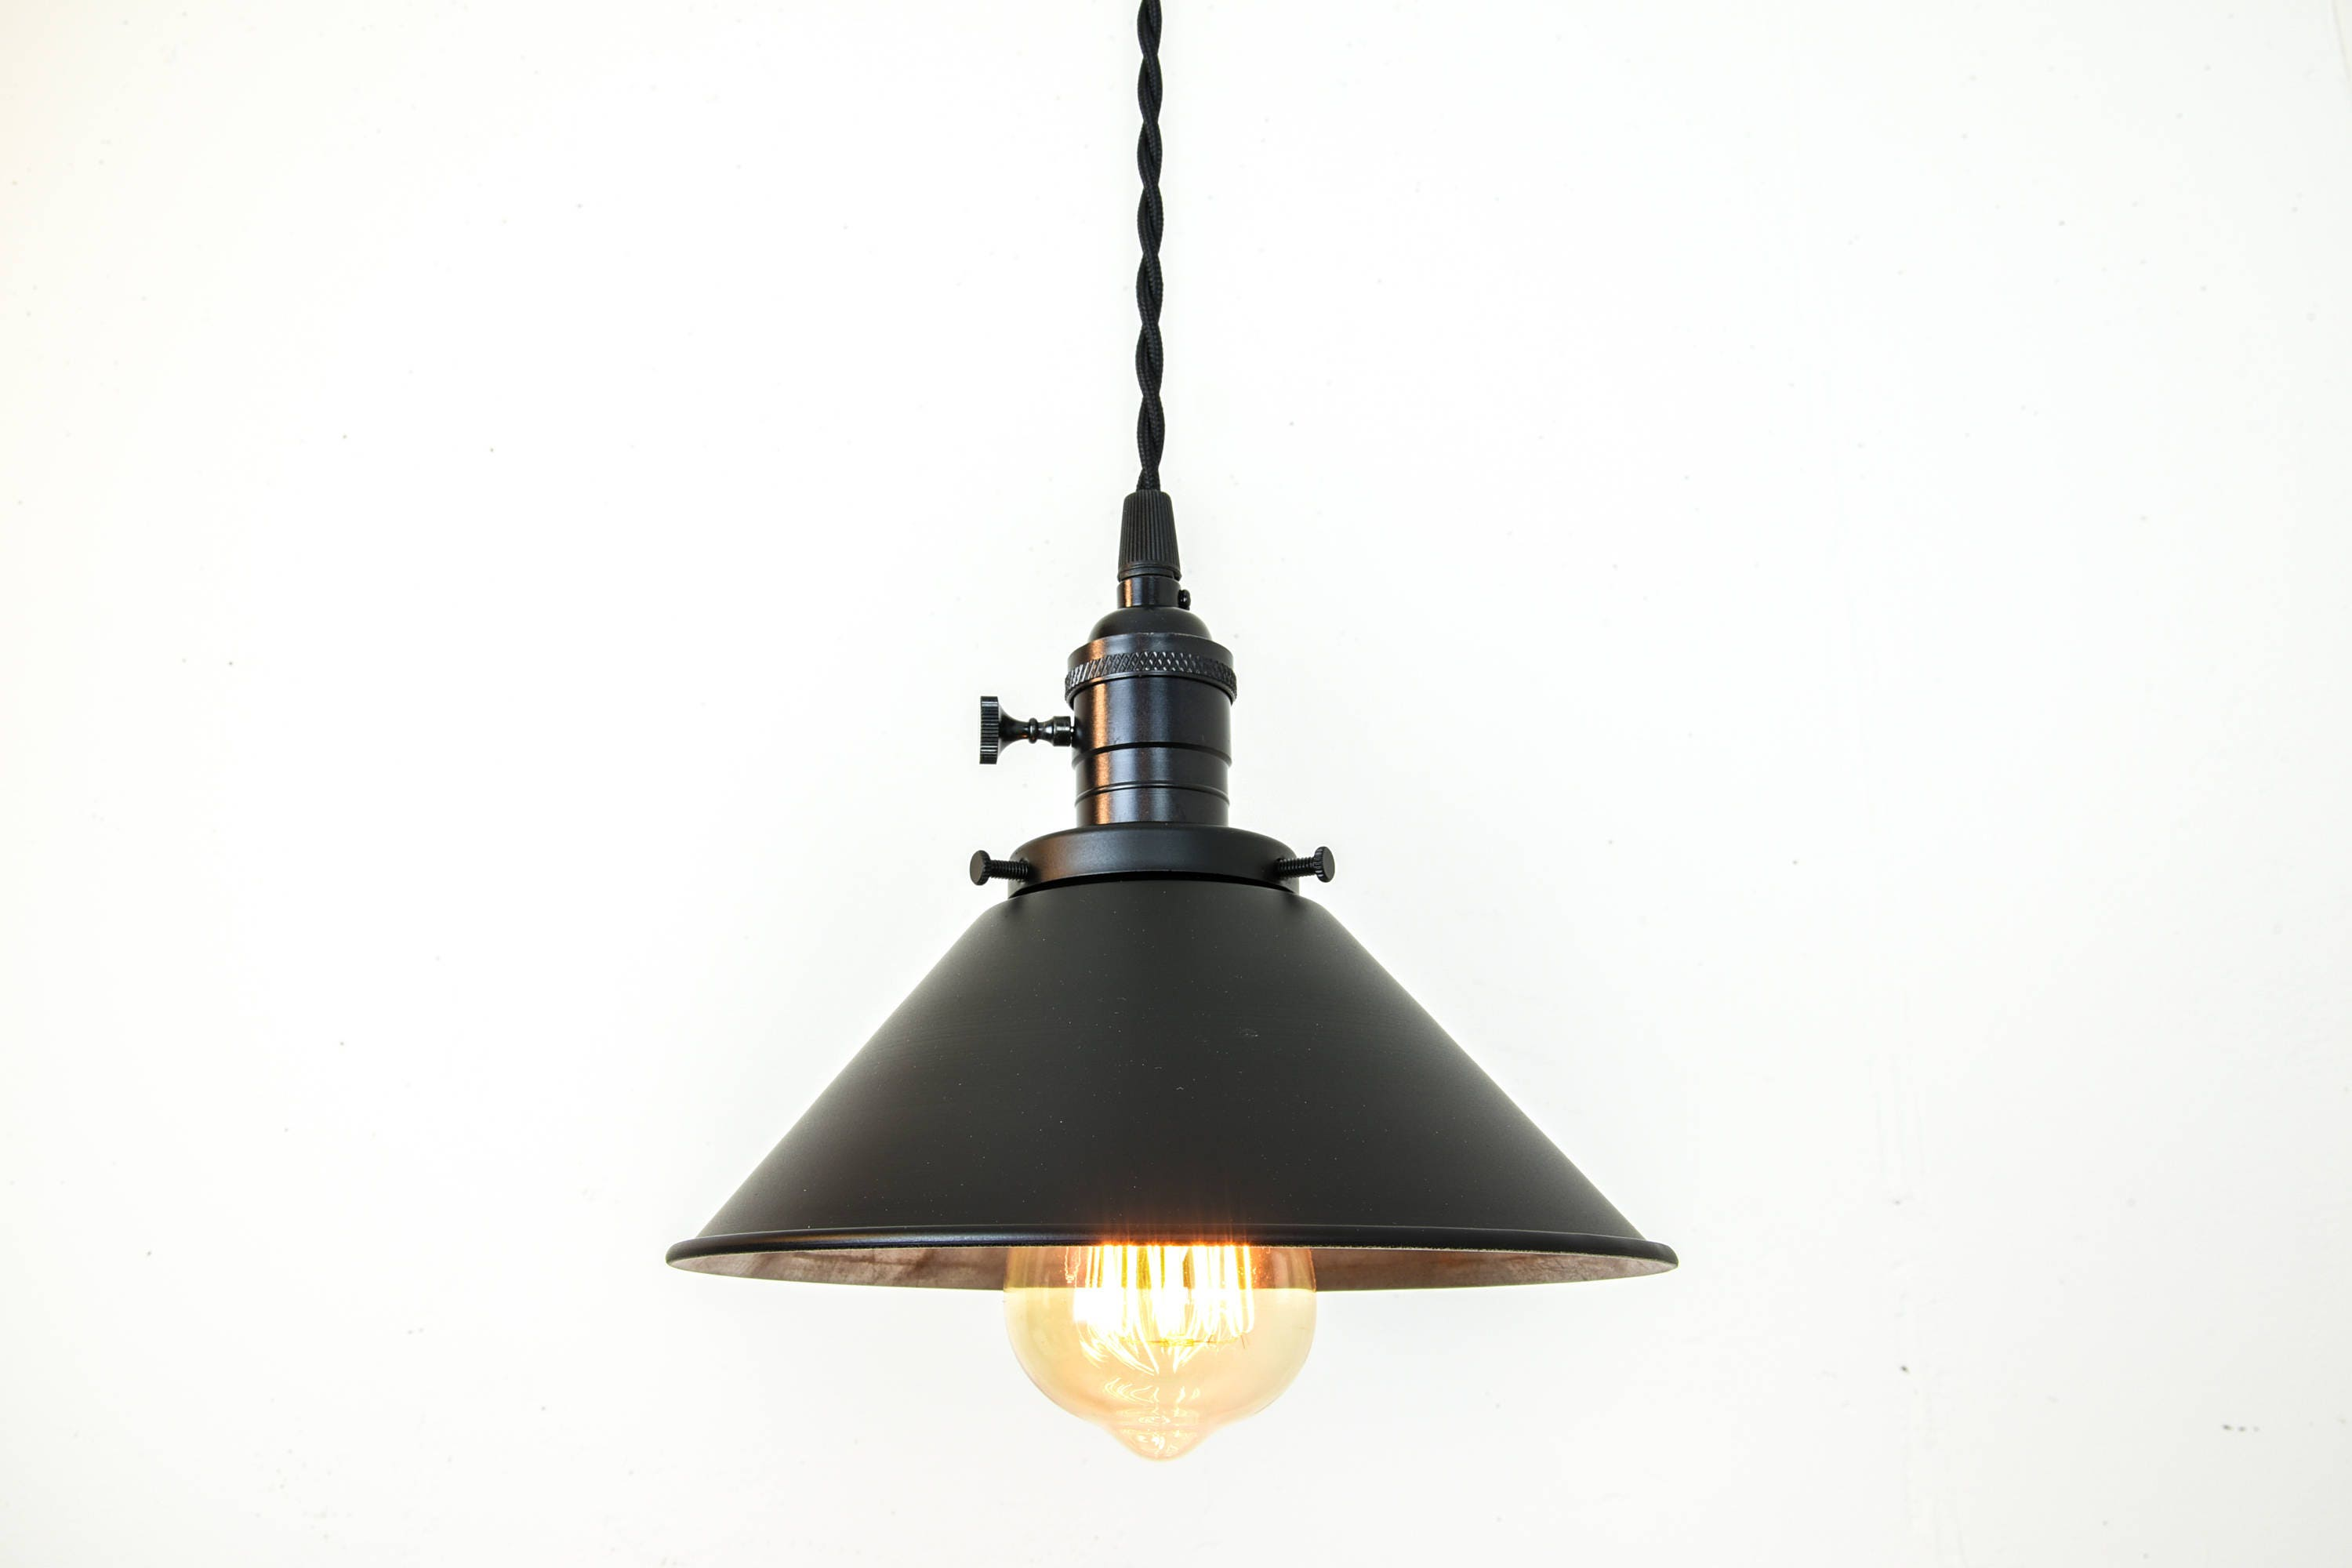 Black Pendant Light - Country Light Fixture - Hanging Light - Plug ...